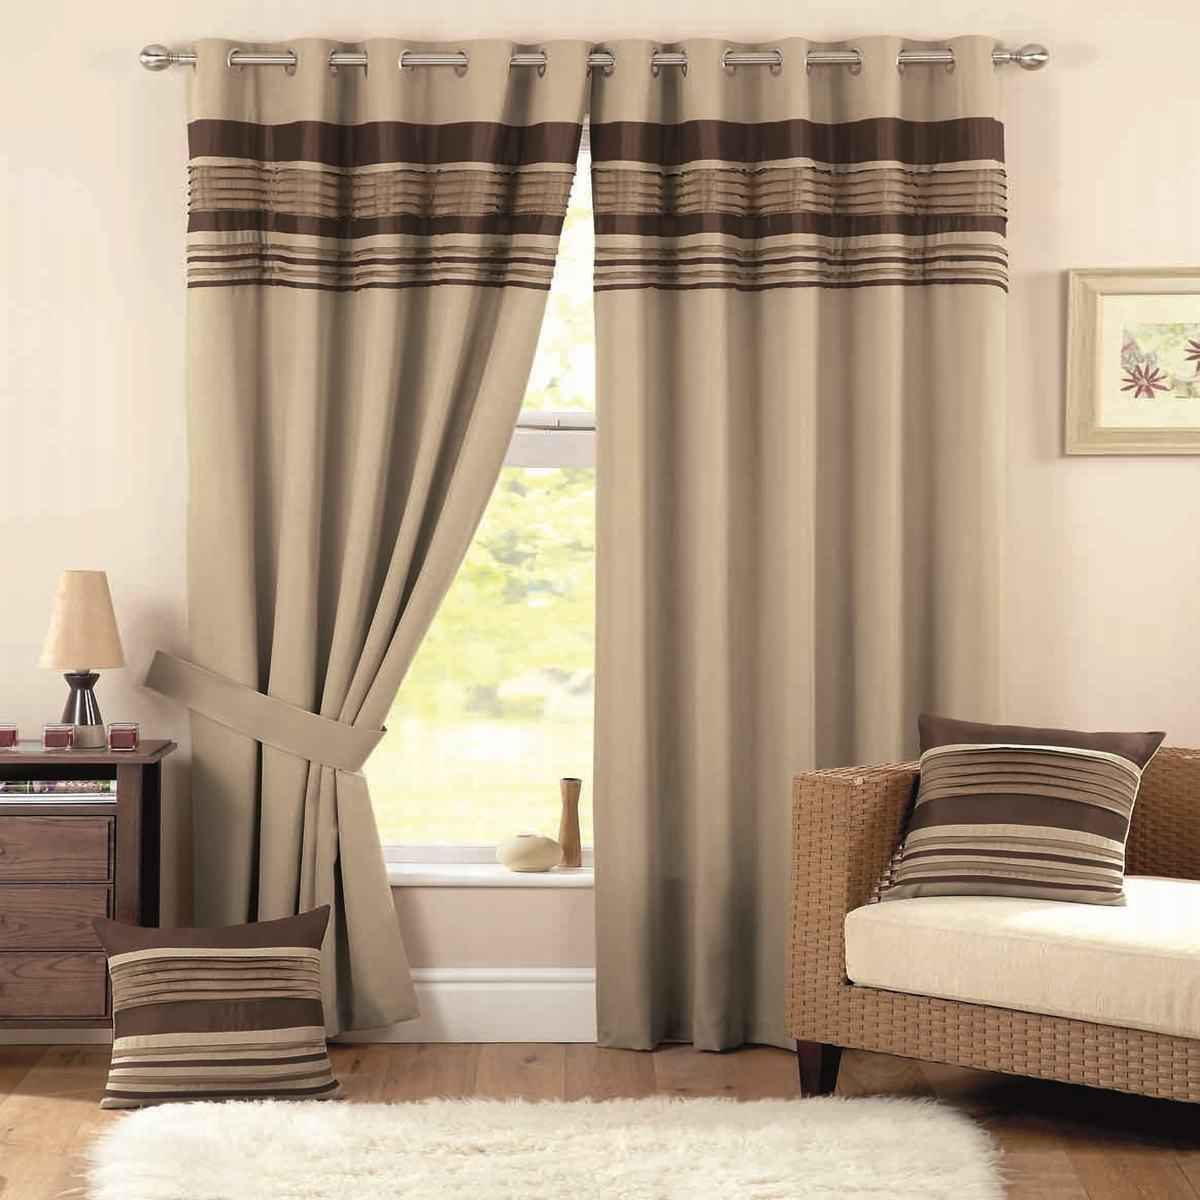 Cheap curtains and drapes ideas for Home drapes and curtains